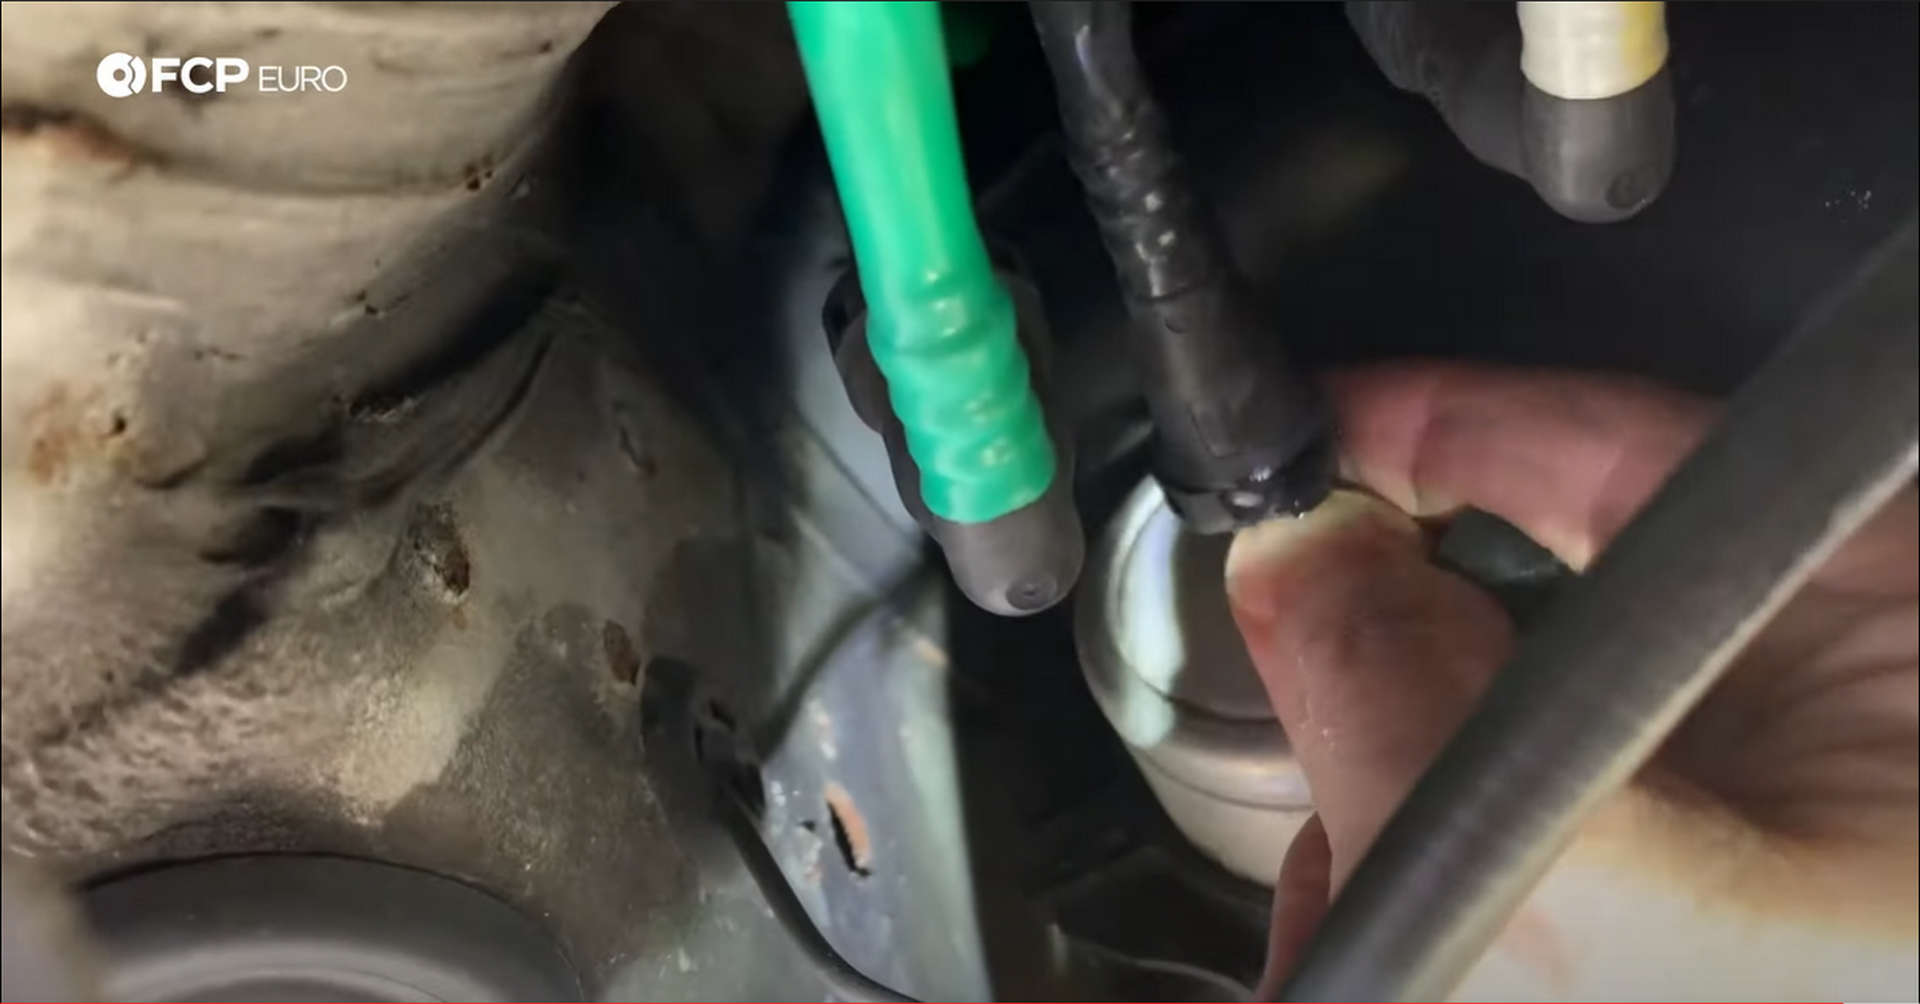 DIY VW GTI Fuel Pump removing the fuel filter hoses